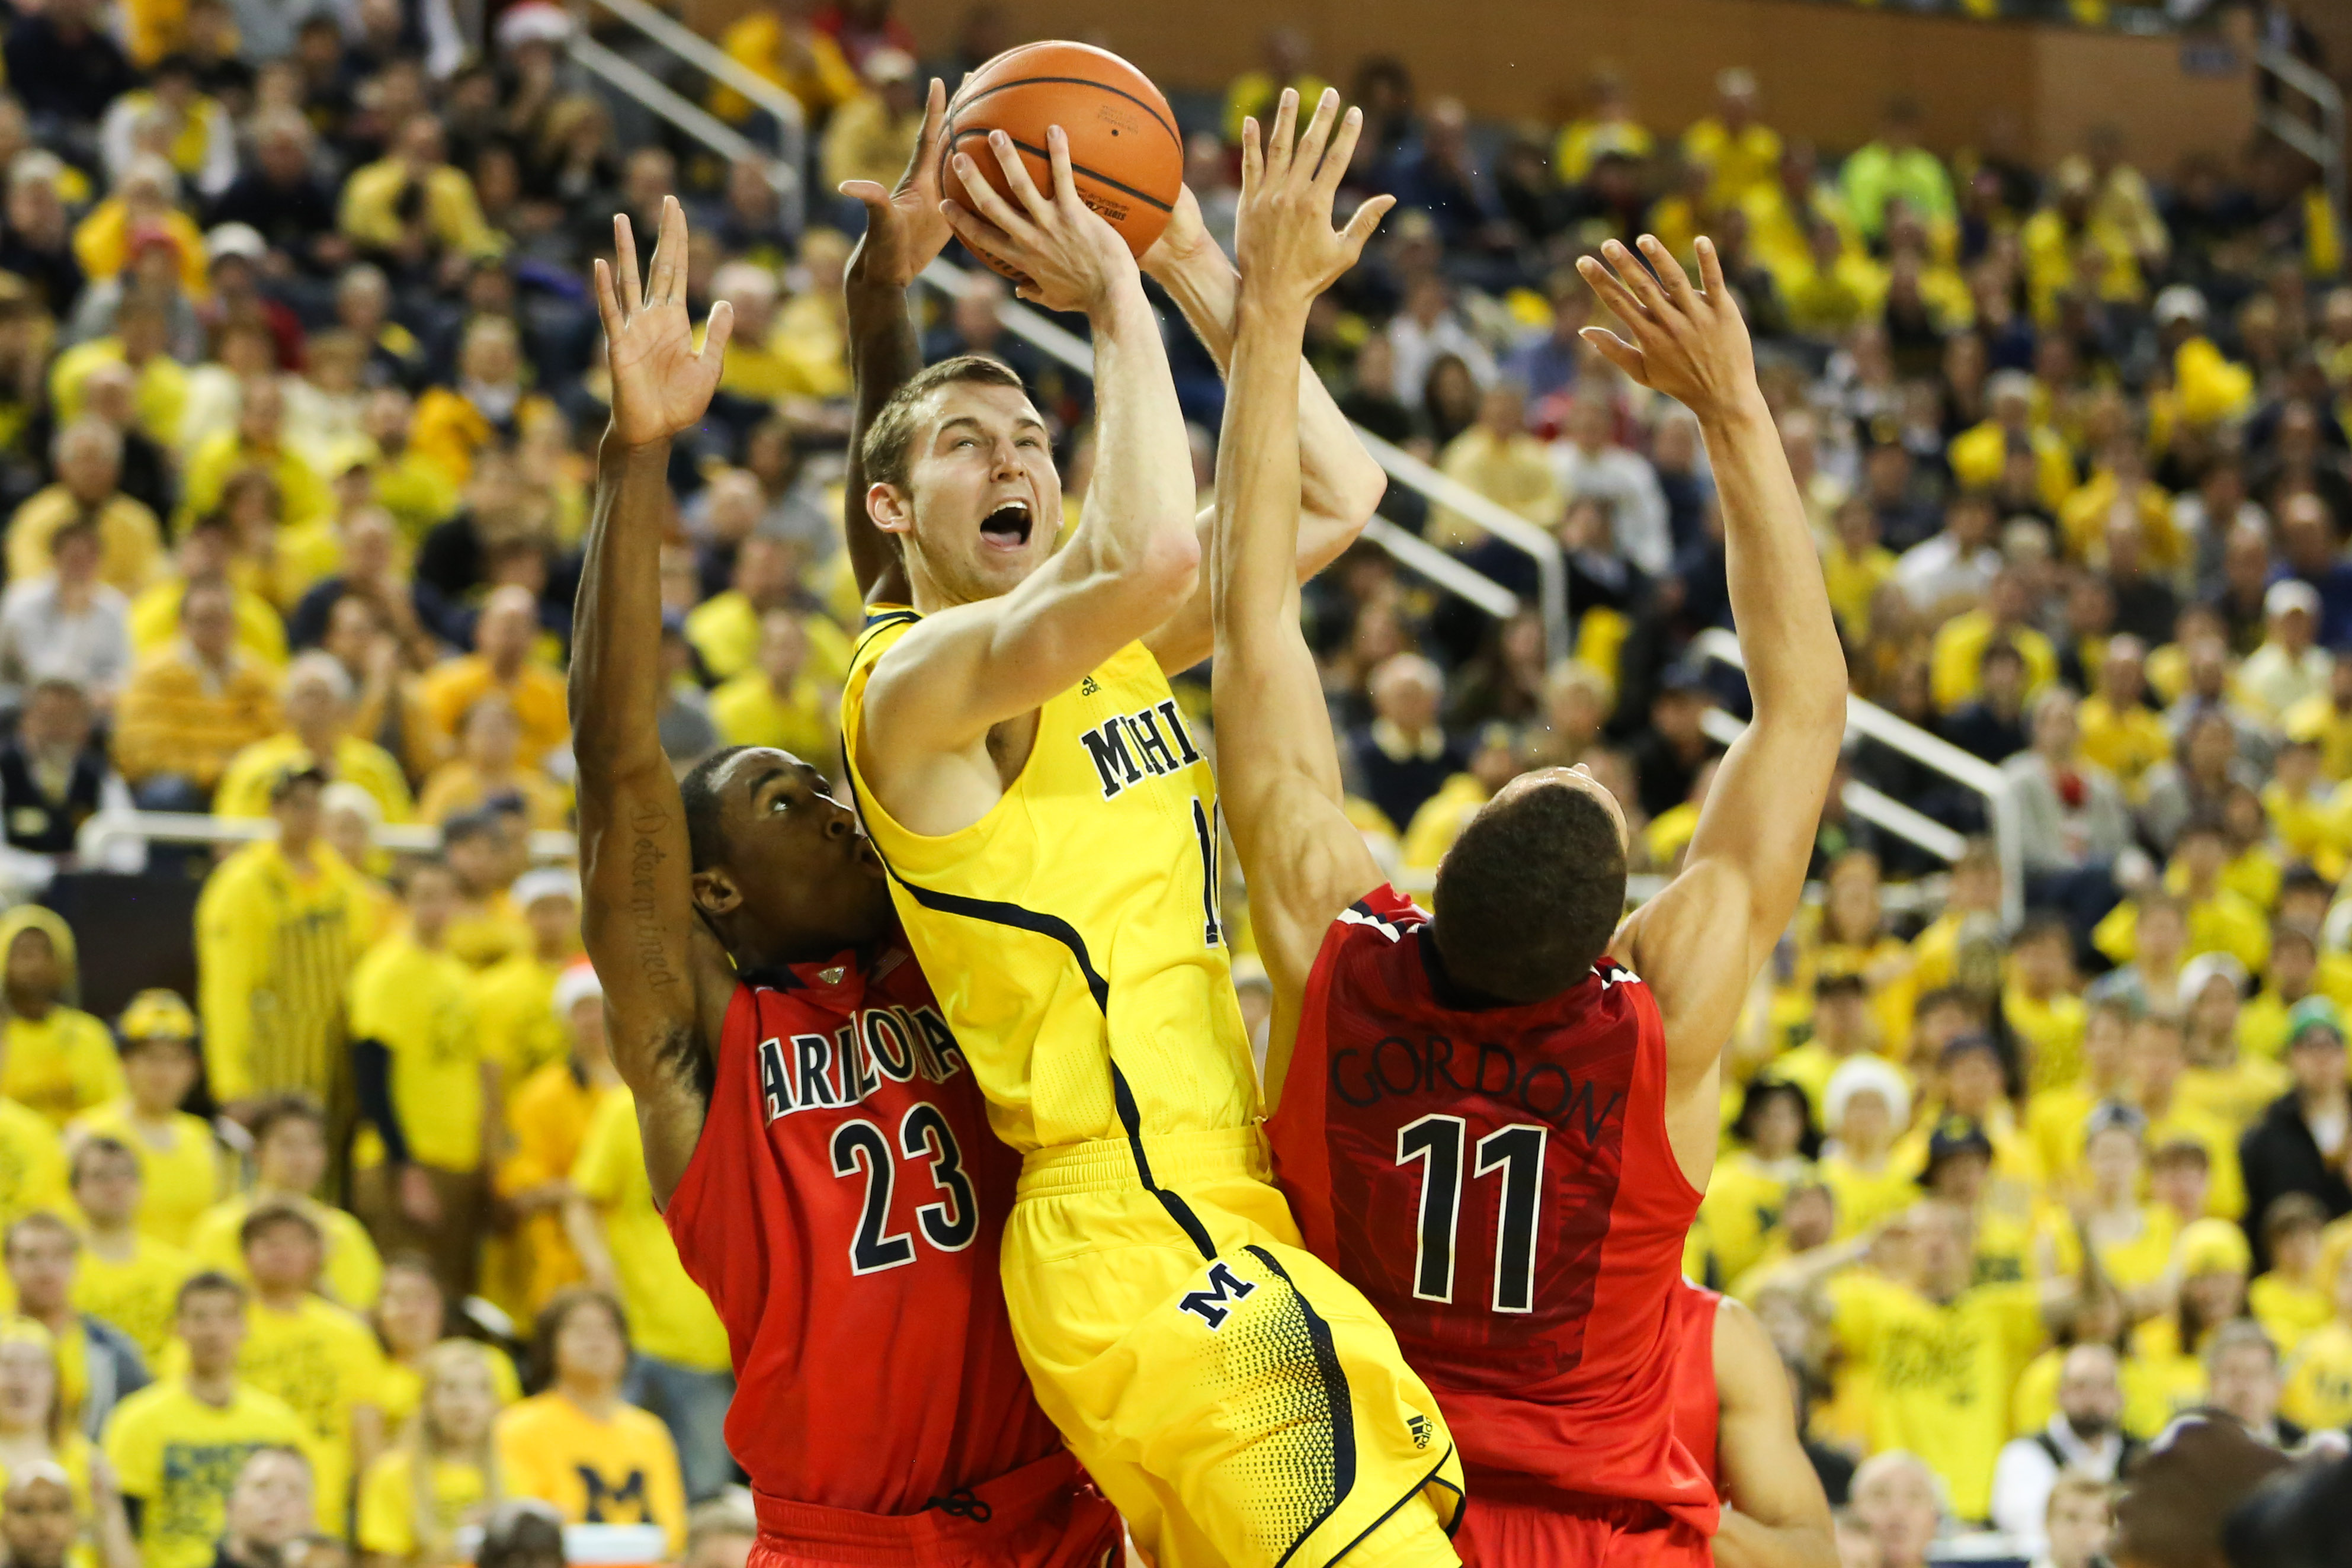 Michigan 70, Arizona 72-24